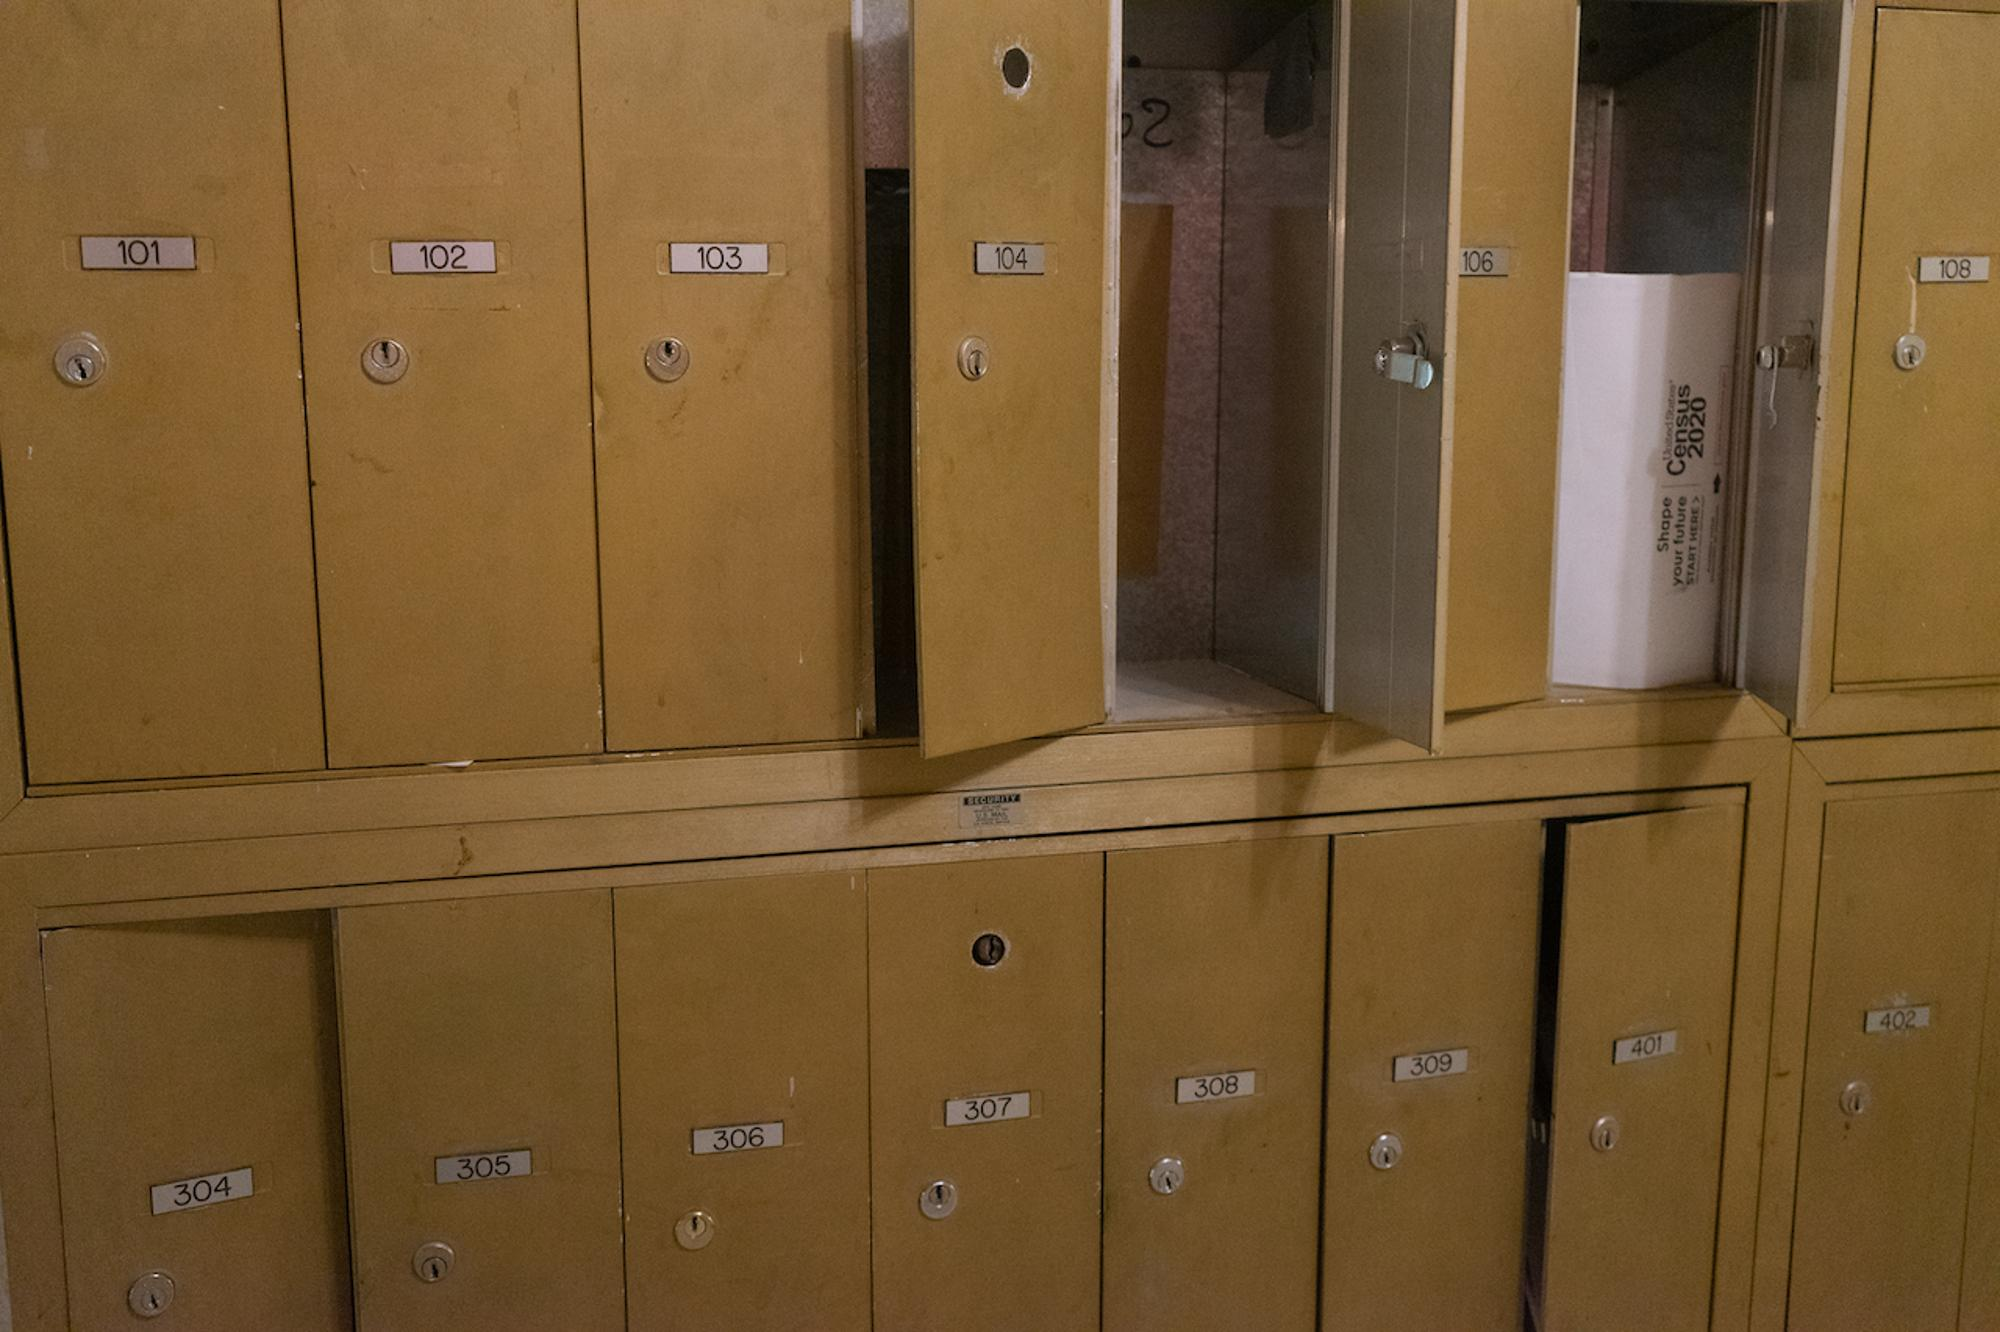 Open Mail Boxes, to Empty ApartmentsTaken by Darryl DeAngelo Terrell for WDET